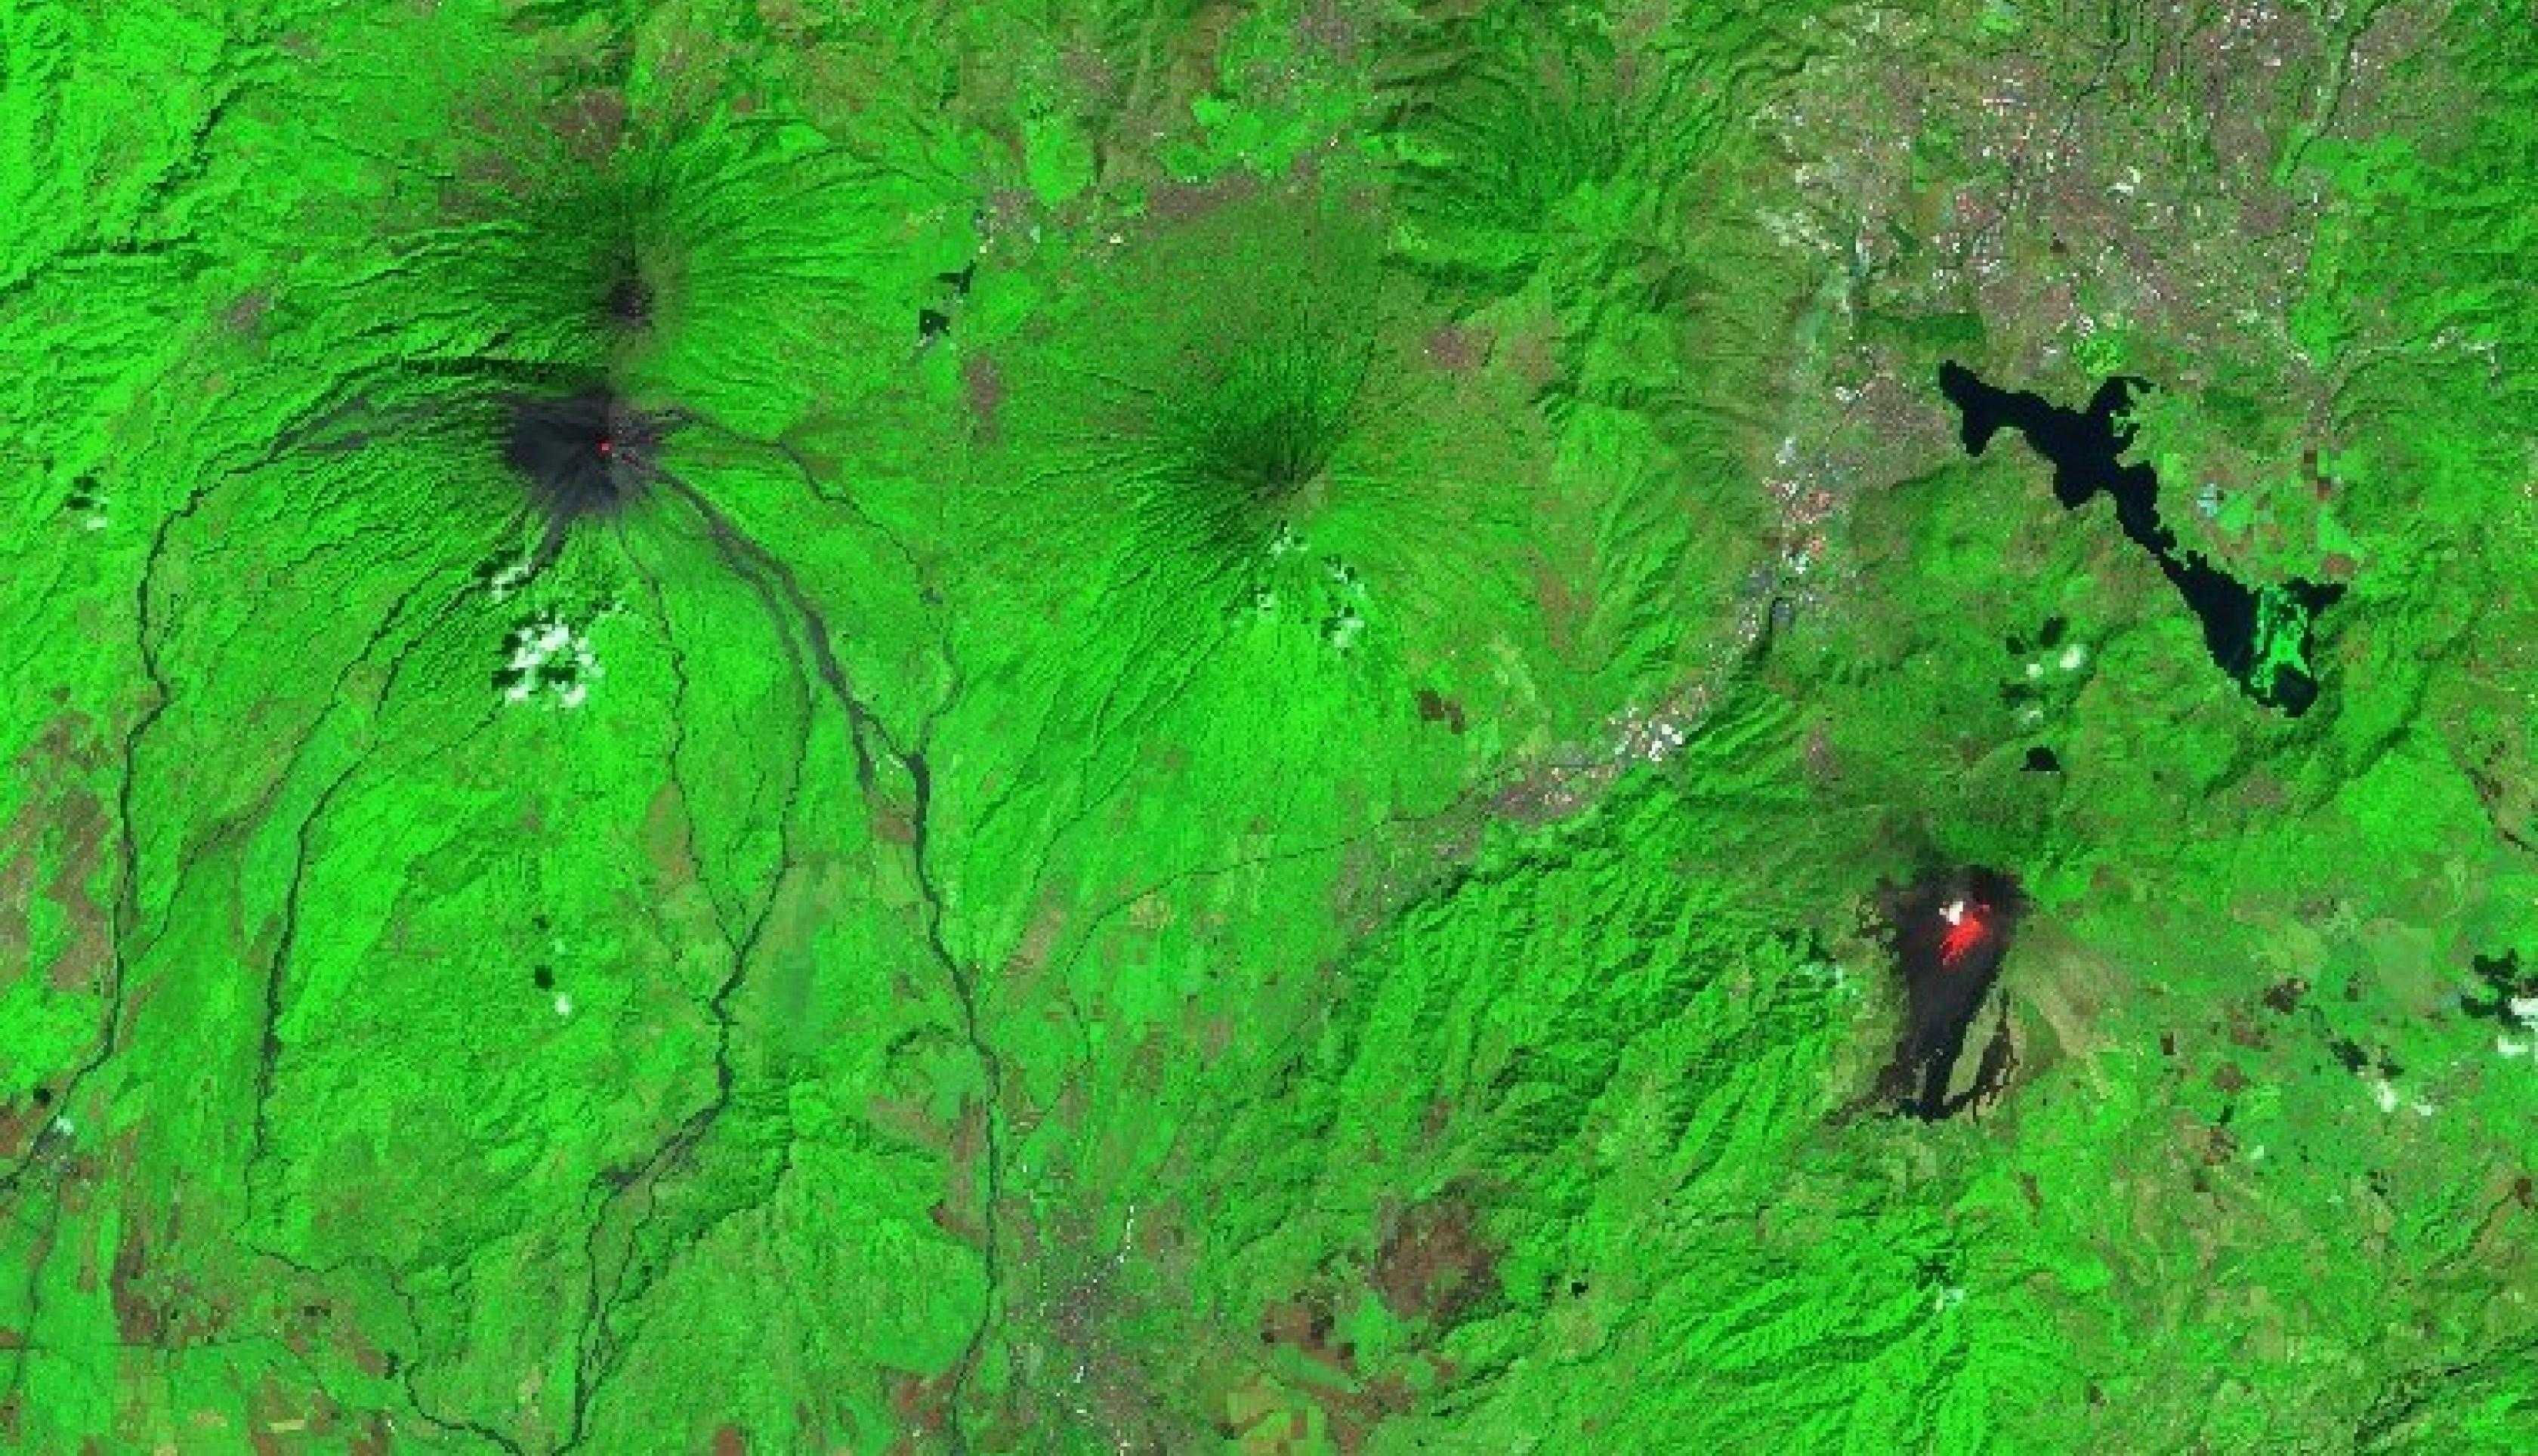 The European Space Agency (ESA) Sentinel-2 satellite captured this image on February 8, 2021, showing the Fuego volcano on the left and Pacaya volcano on the right, with Guatemala City in the upper right. Lava from the volcanoes can be seen in red. Credits: Sentinel Hub. Copyright contains modified Copernicus Sentinel data (2021), processed by ESA